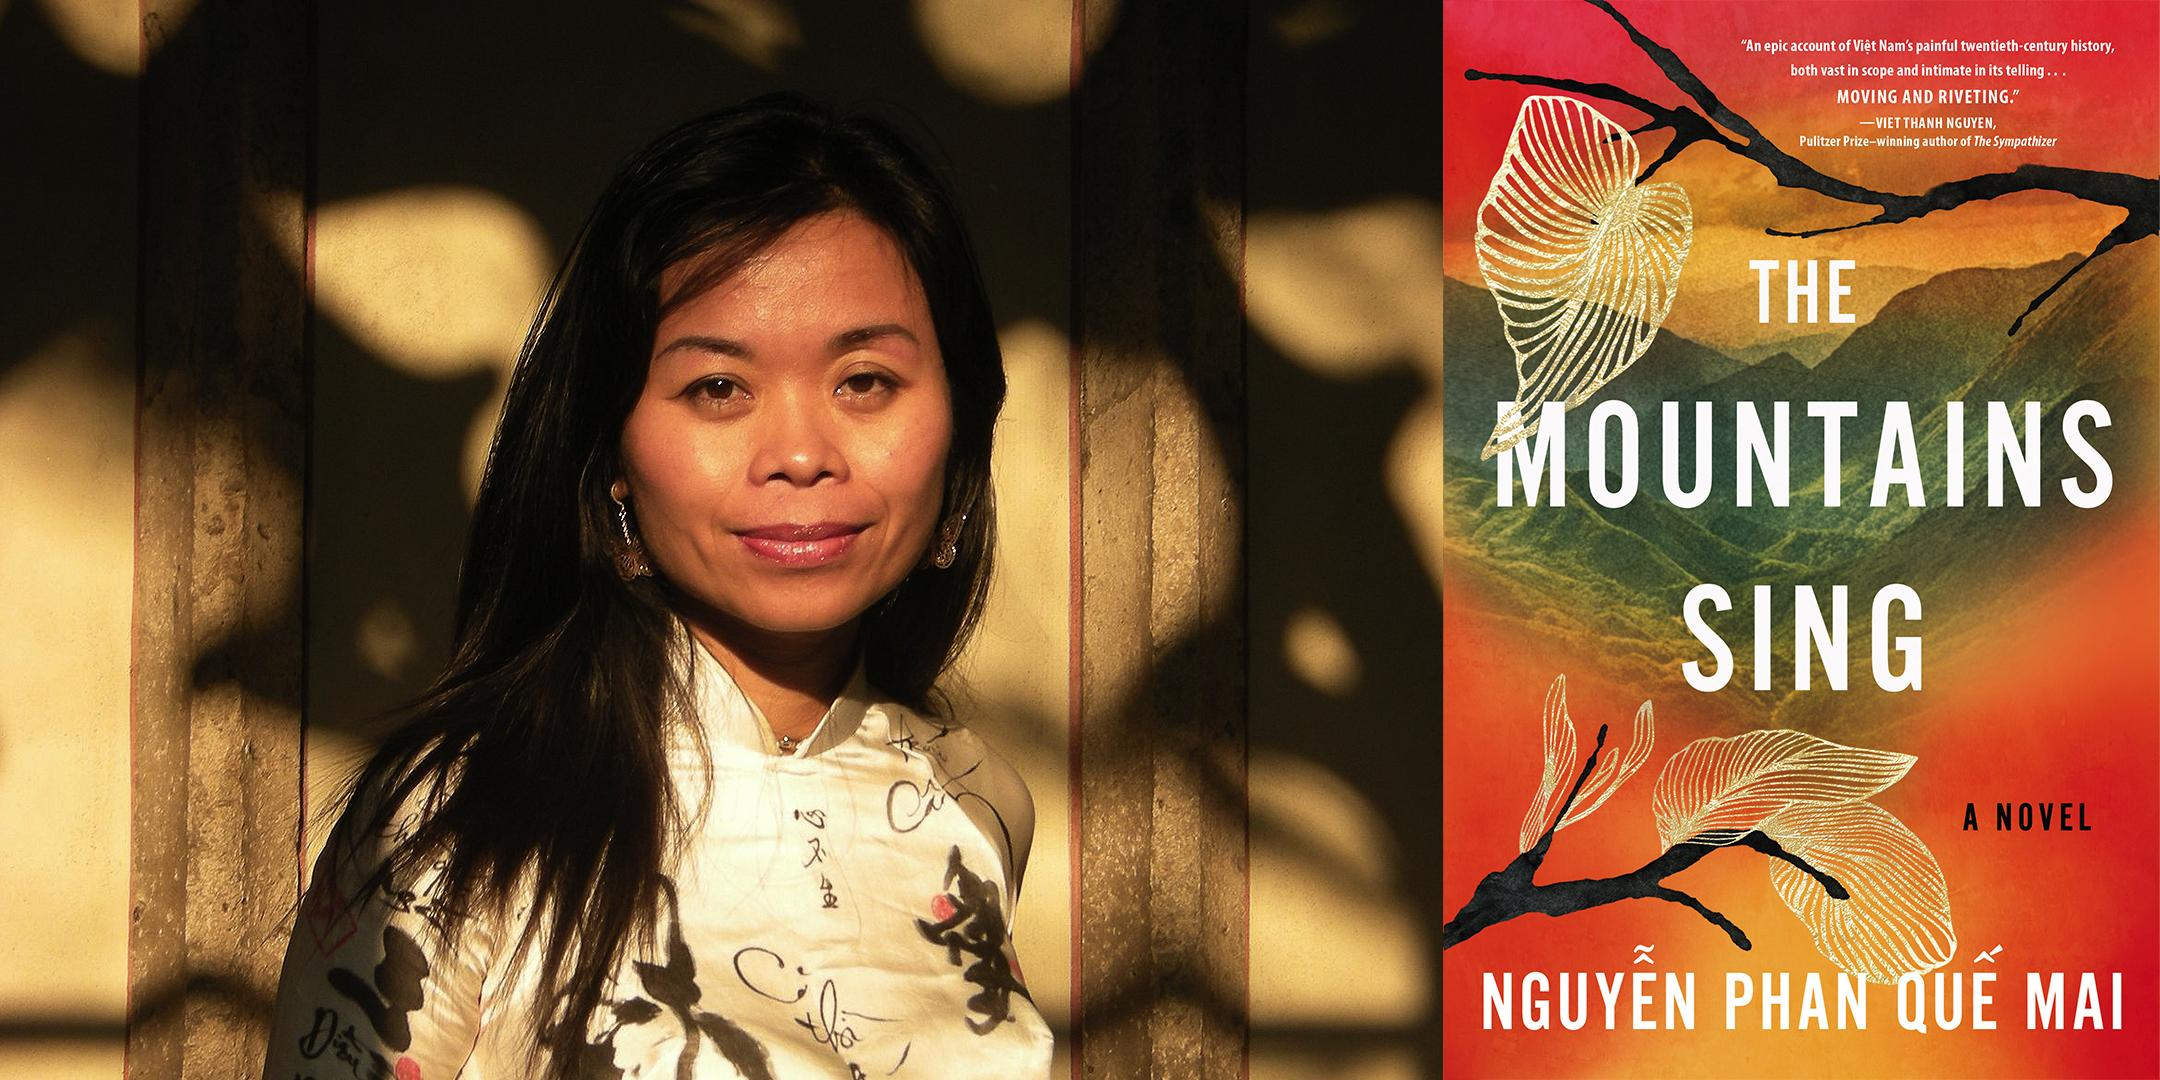 [Cancelled] The Mountains Sing Book Reading with Nguyễn Phan Quế Mai